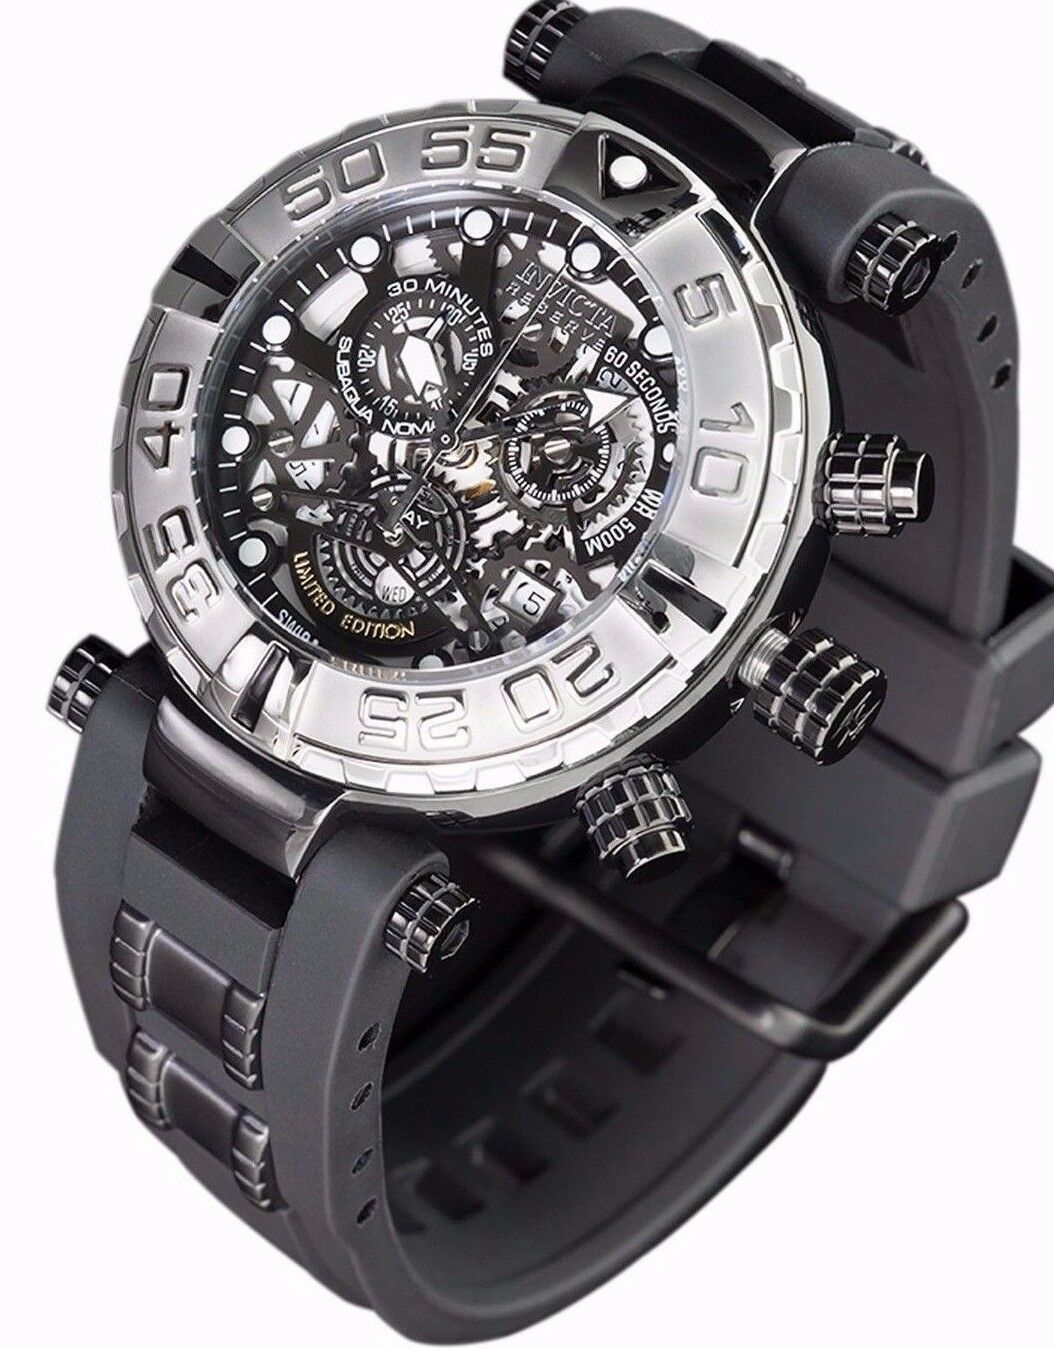 $229.99 - New Mens Invicta Subaqua Swiss Made Chronograph Skeleton Black Dial Watch